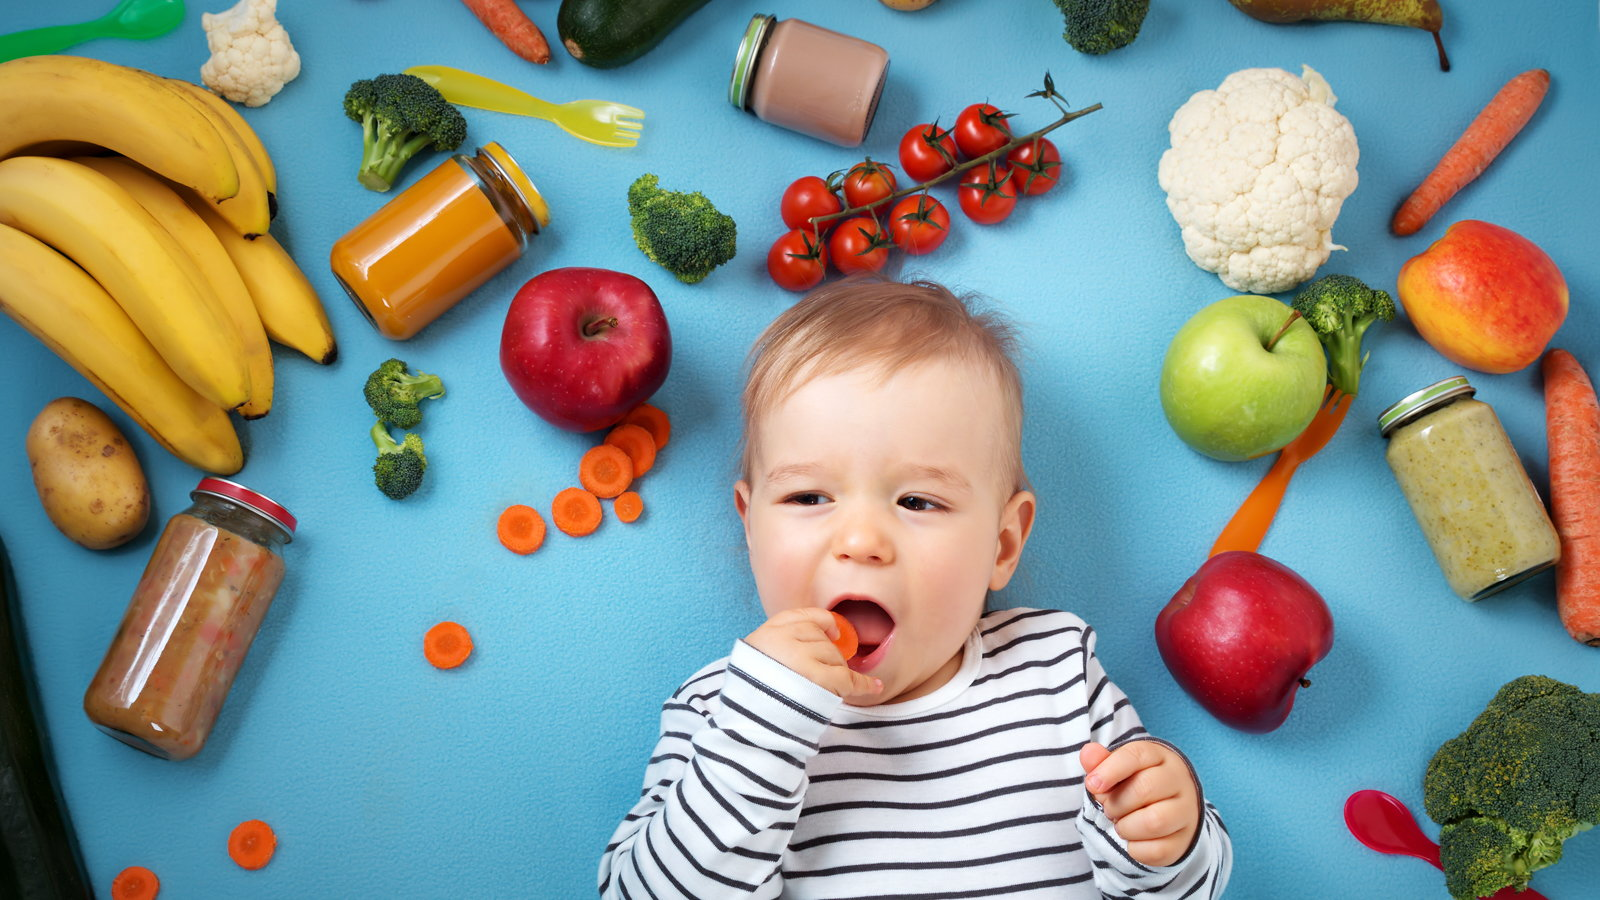 baby surrounded by fruits and vegetables